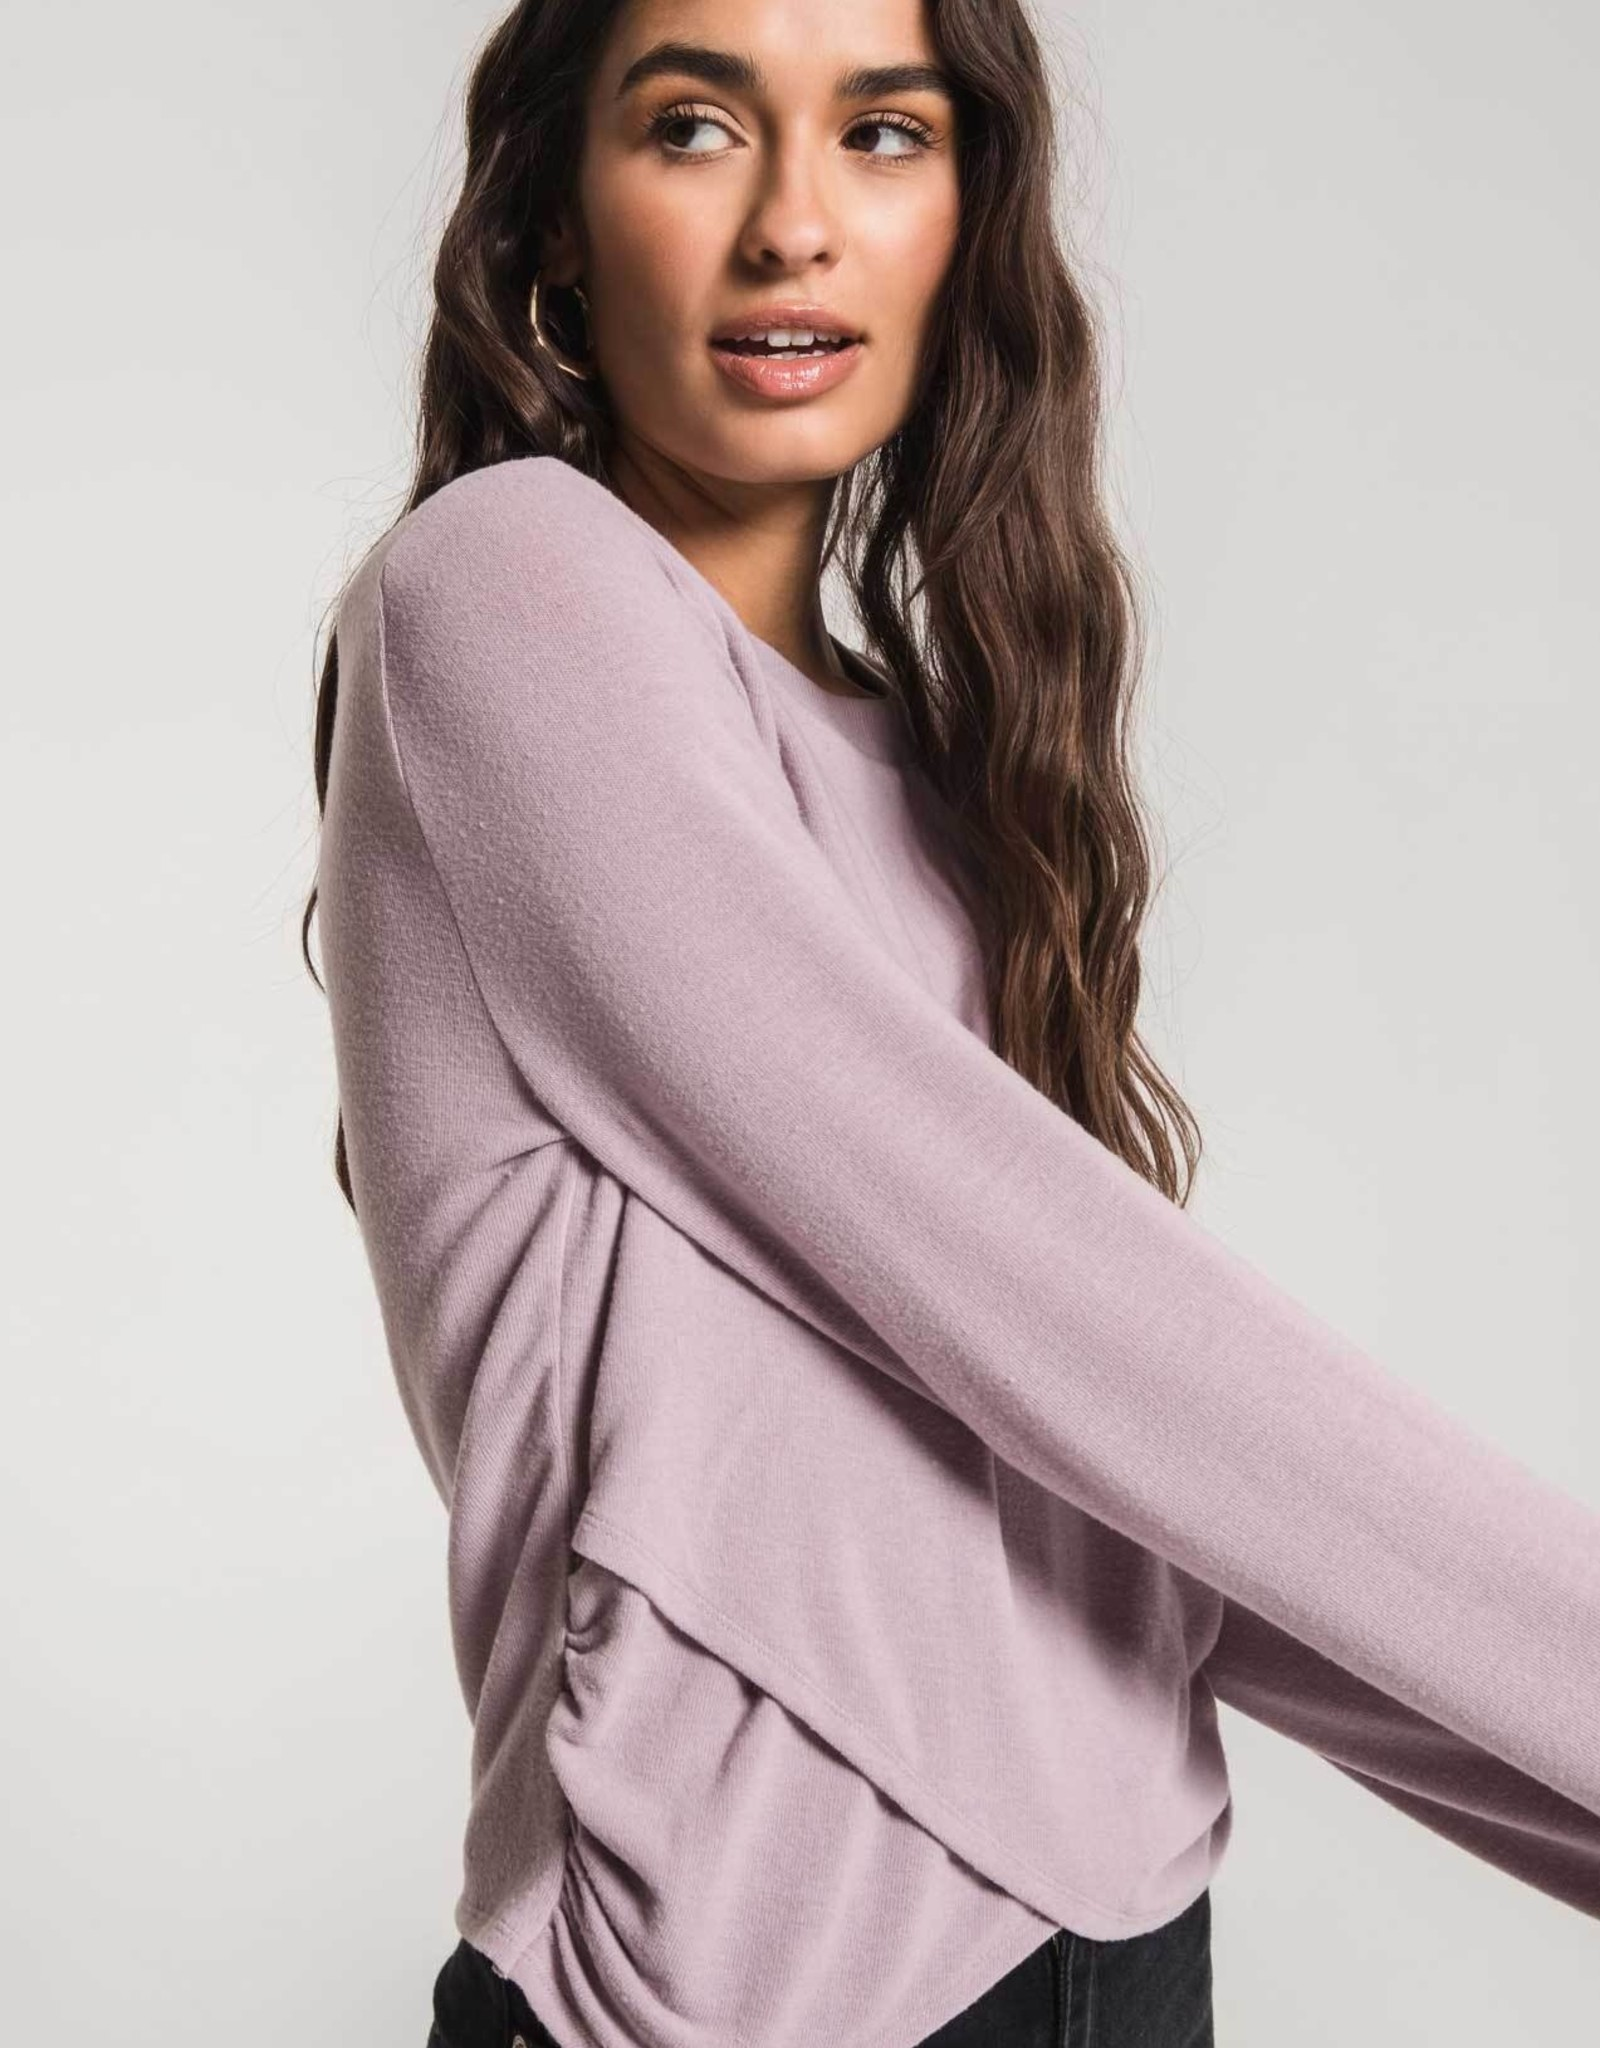 The Soft Spun Rouched L/S